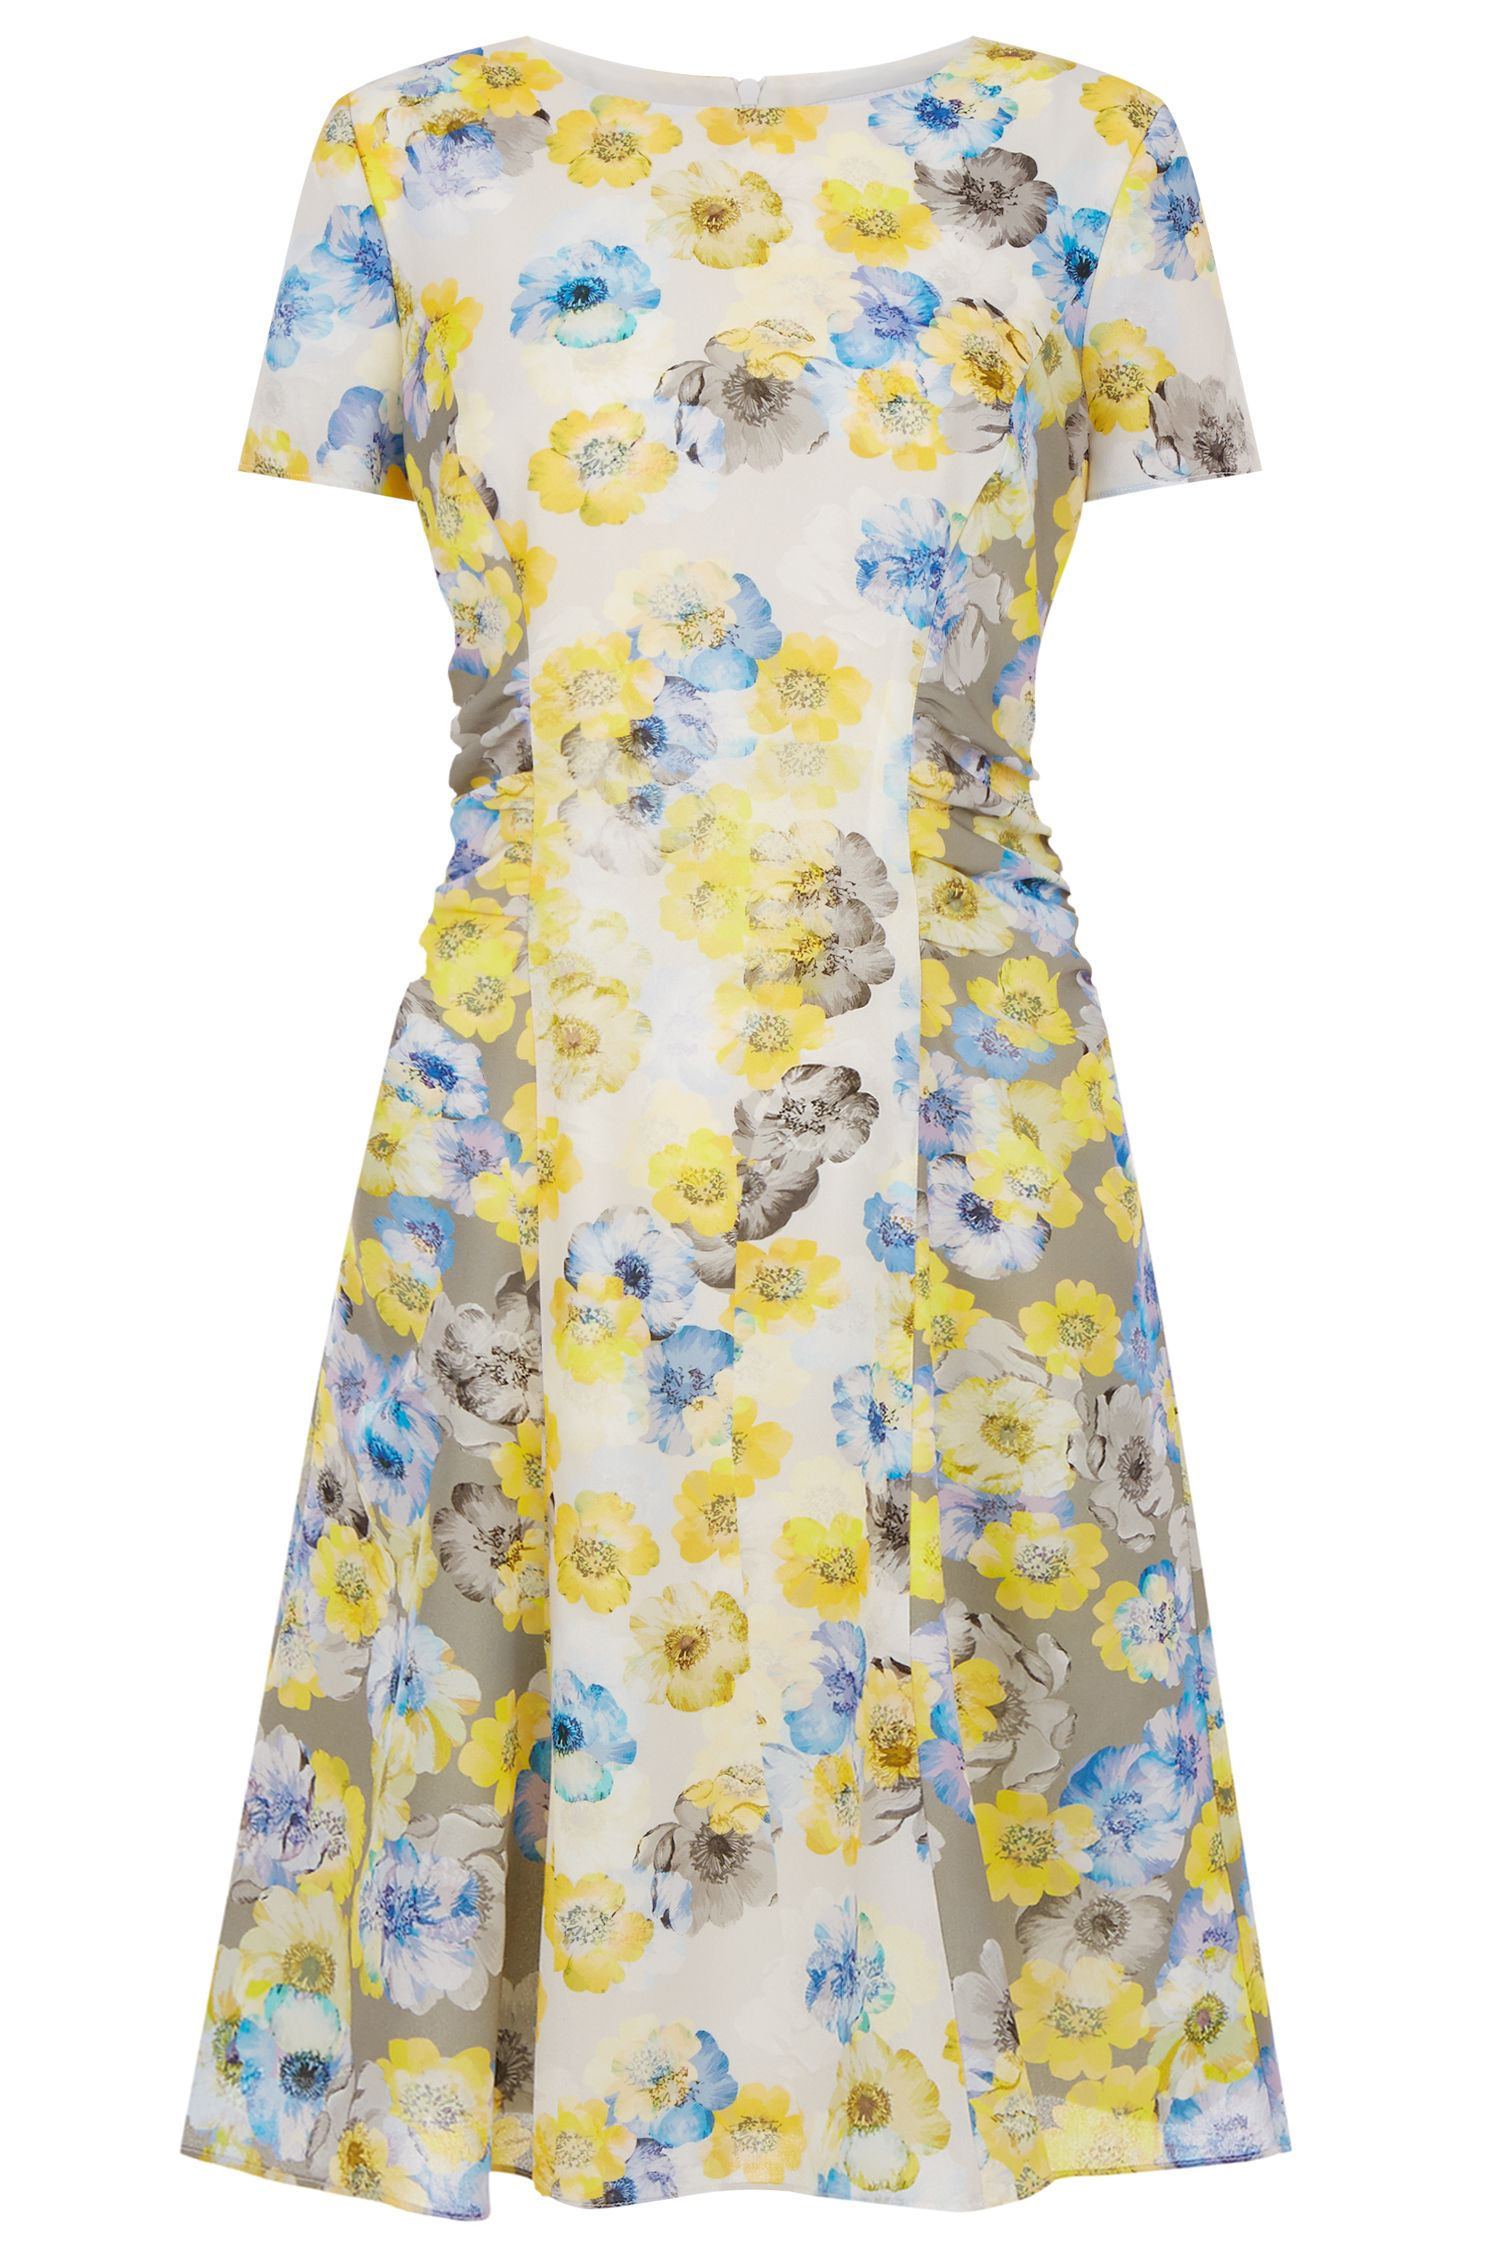 Fenn Wright Manson Tuscany Dress, Multi-Coloured